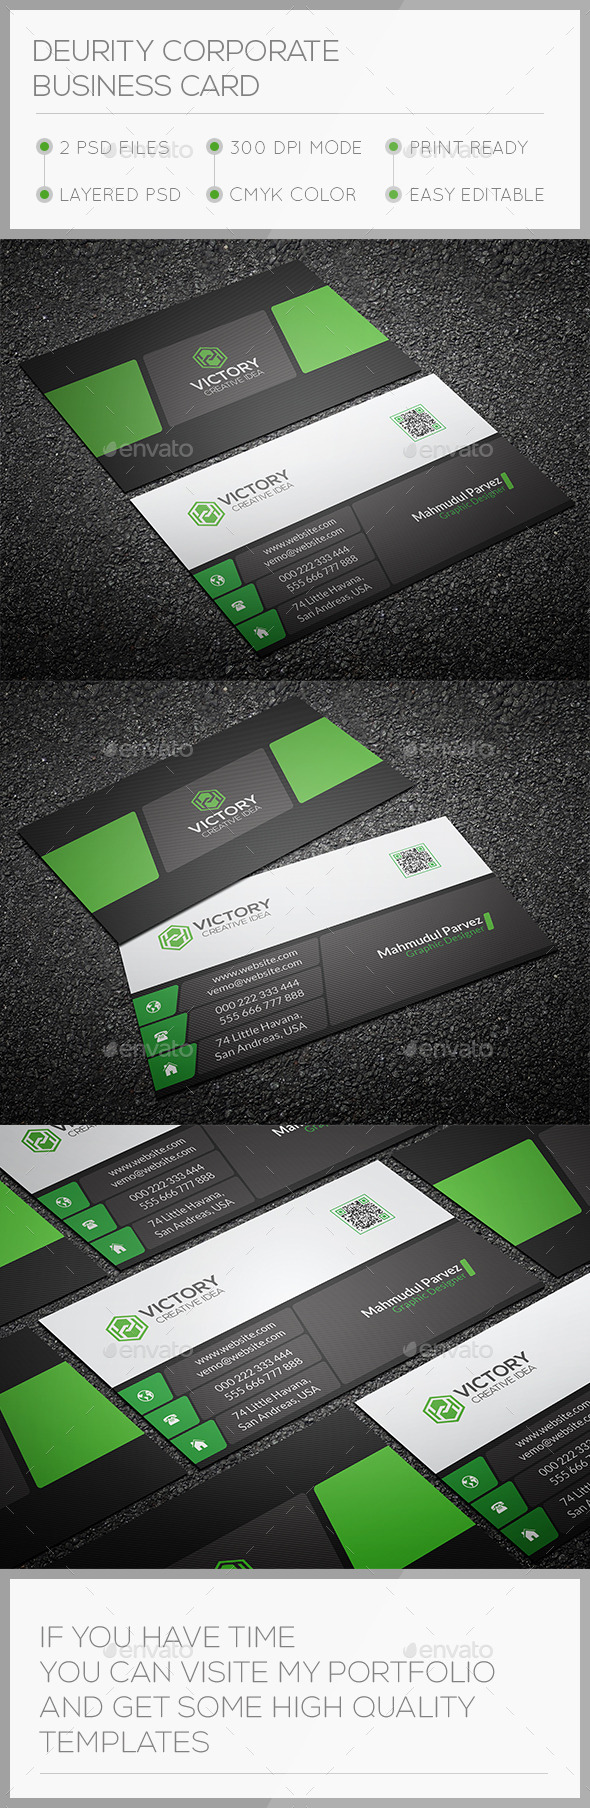 GraphicRiver Deurity Corporate Business Card 10842838